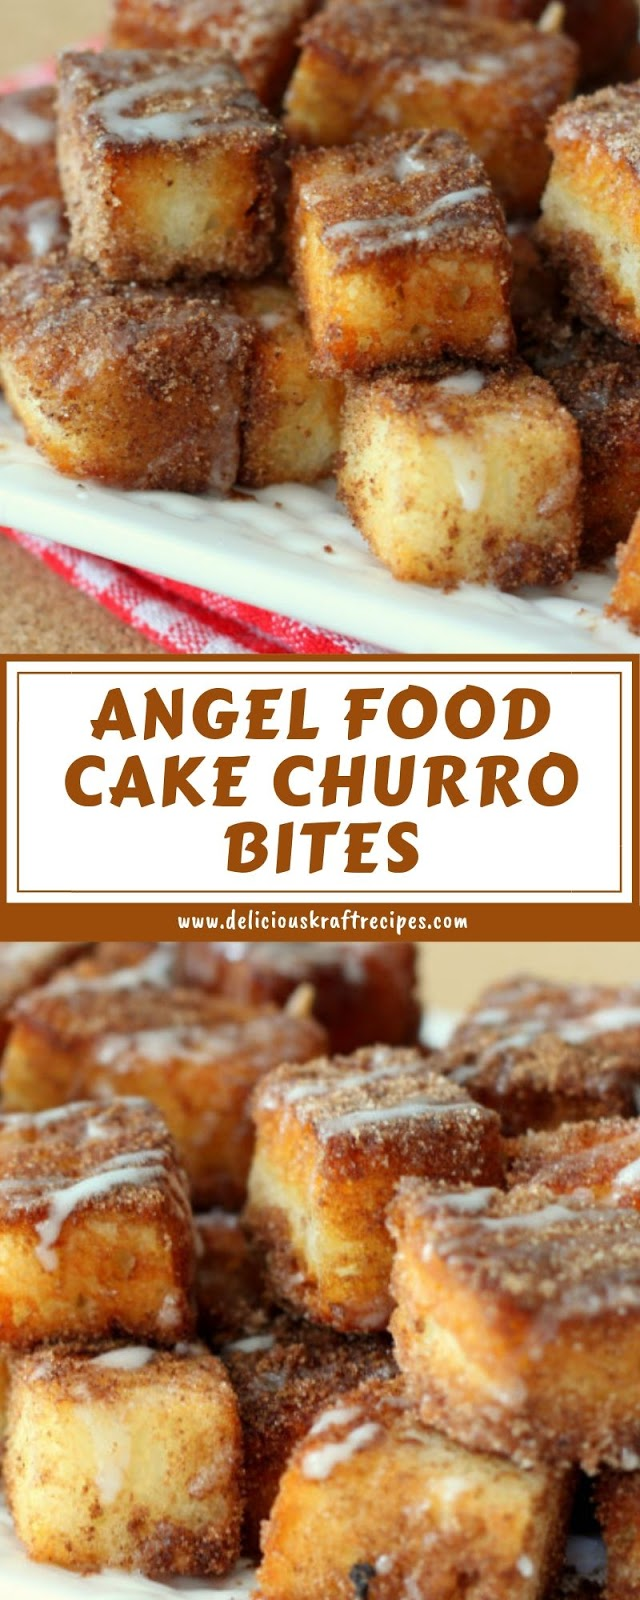 ANGEL FOOD CAKE CHURRO BITES